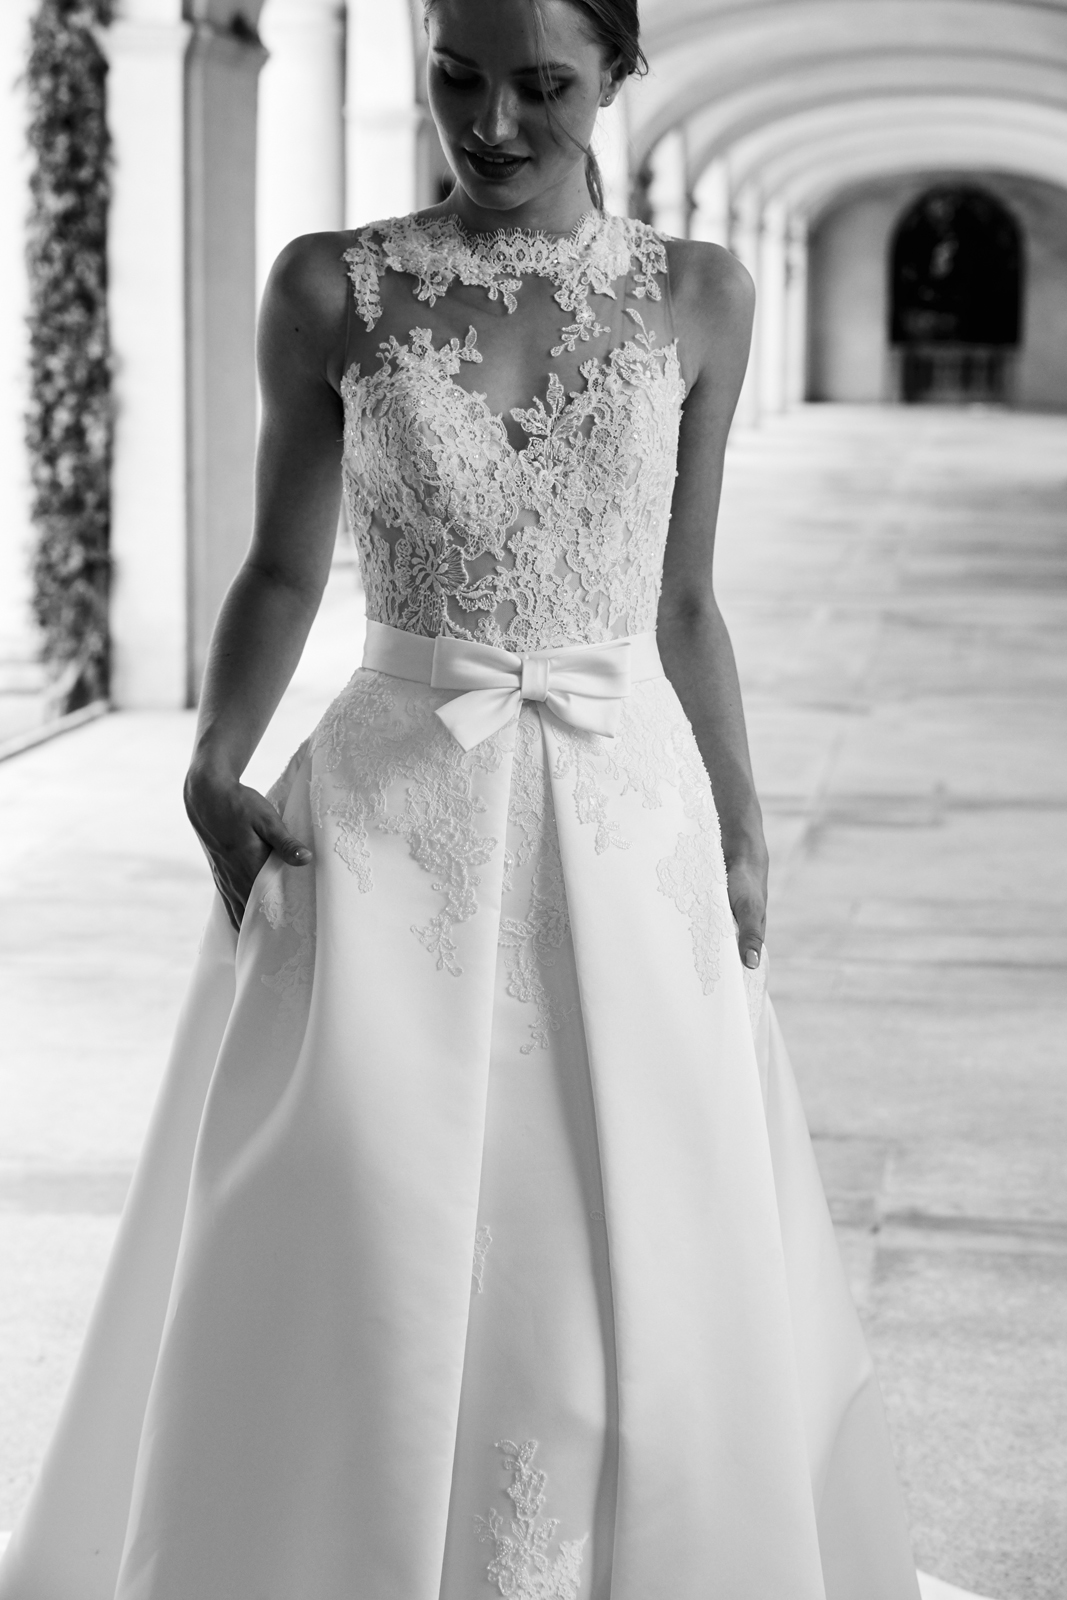 Introducing The 2018 La Sposa Collection By St Patrick Love My